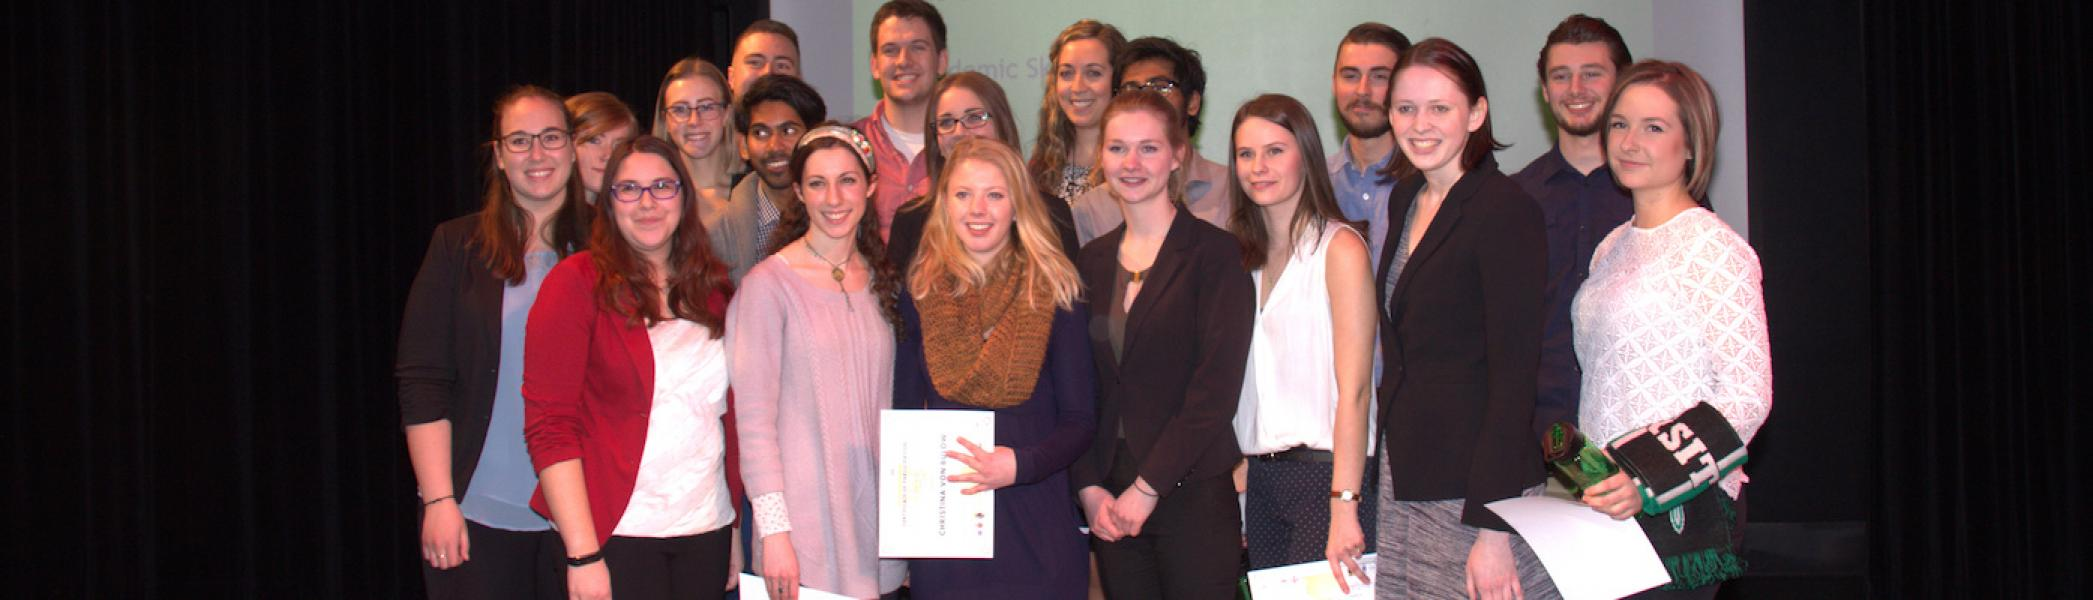 A group of students standing in a group and holding 3MP awards